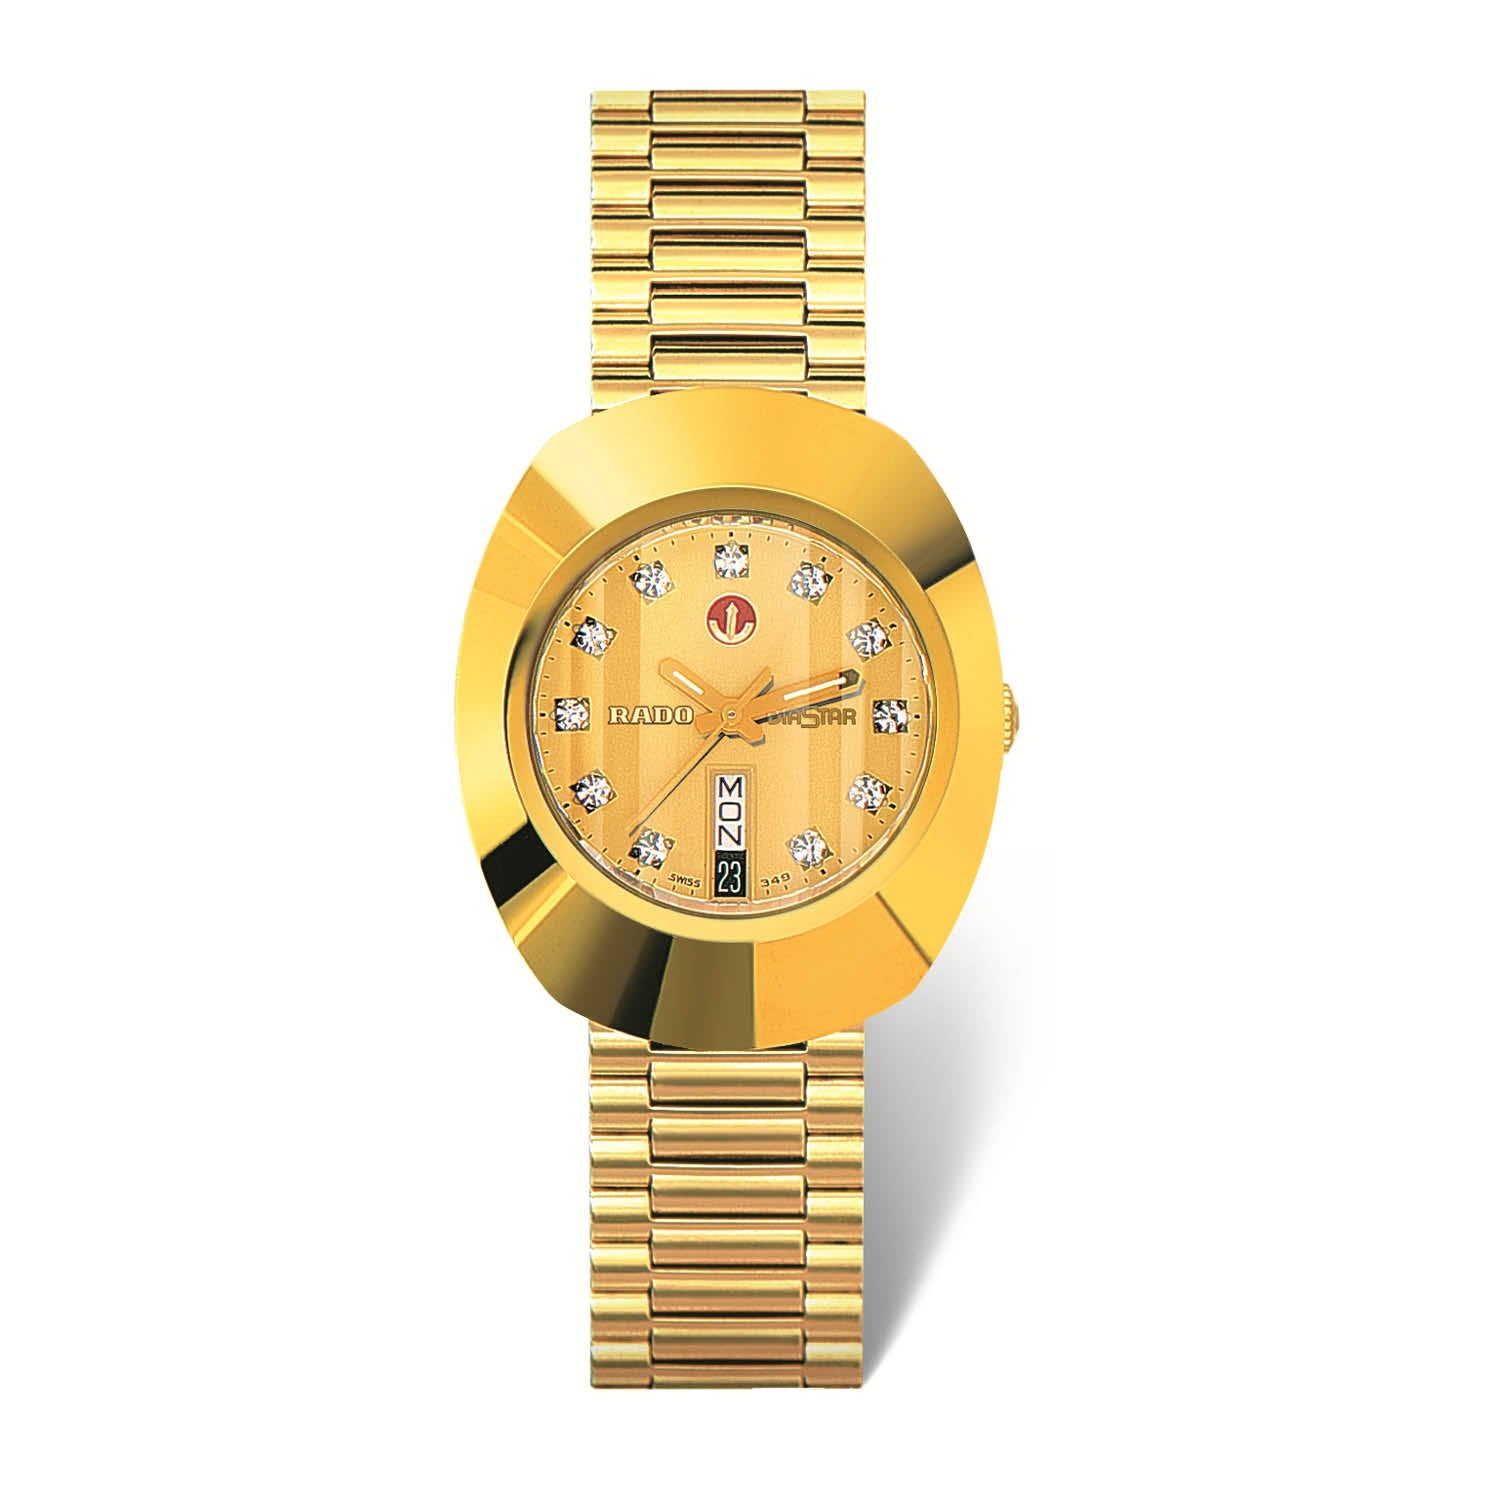 RADO Original large watch, yellow gold PVD bracelet and CVD-coated hard metal R12413493